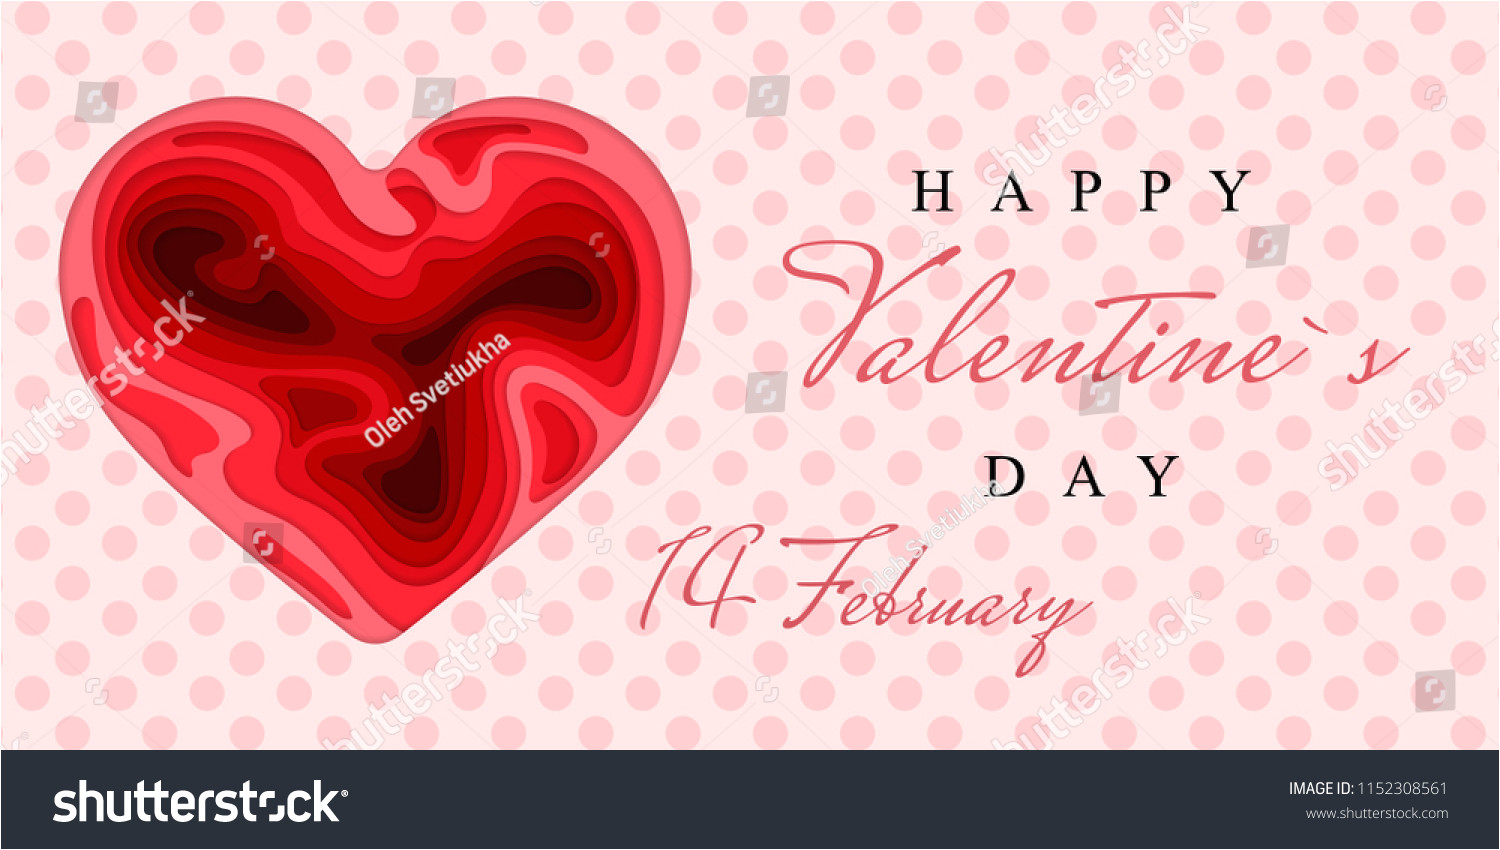 stock vector happy valentine s day d paper cut heart concept design greeting card paper carving heart shapes 1152308561 jpg